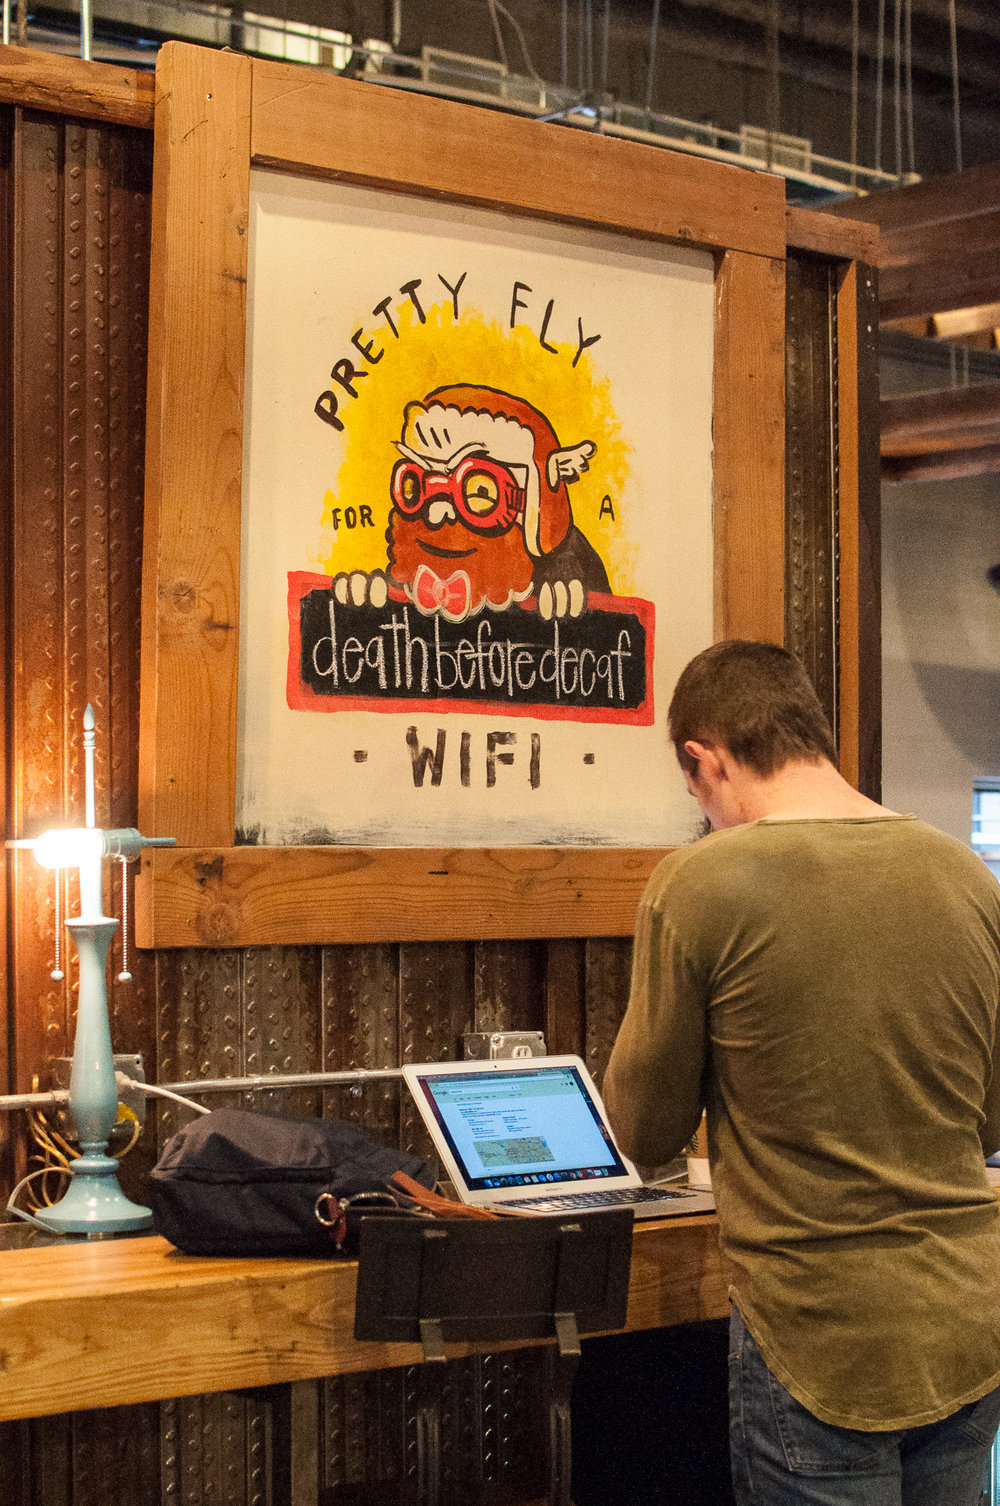 Some observations are made about how people use their devices in a coworking environment.